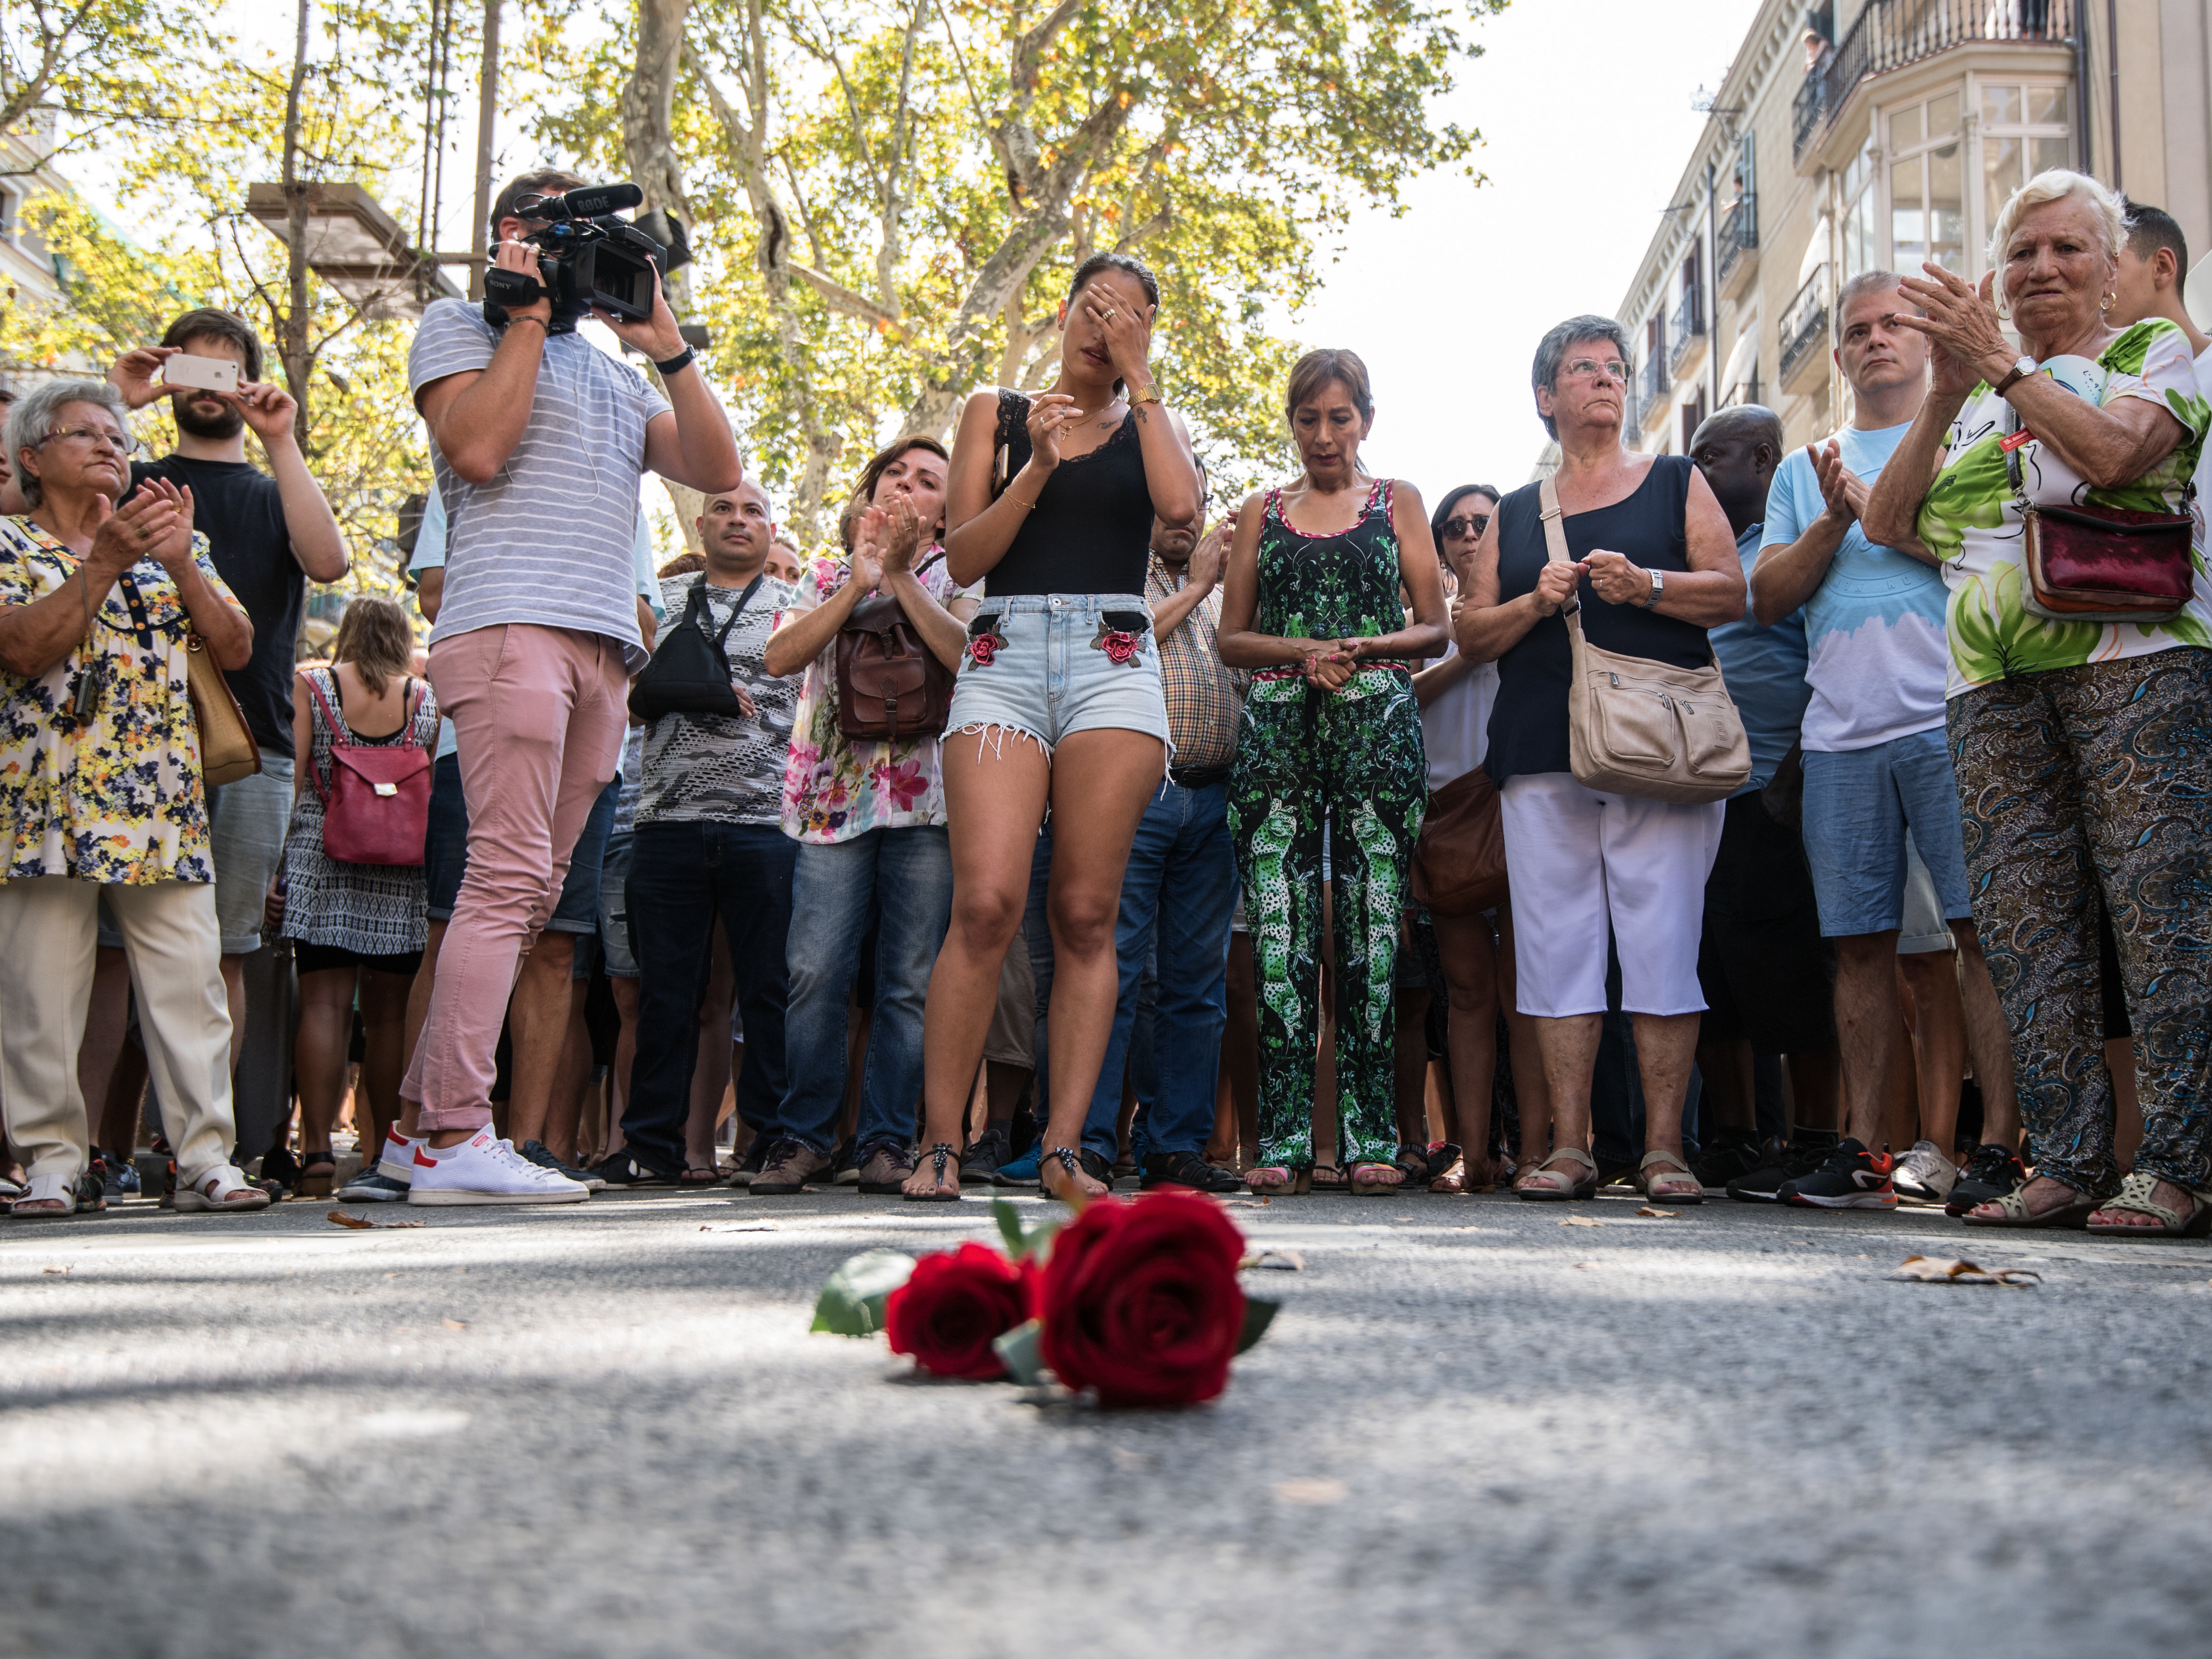 Spain attacks: Man launches Facebook appeal for missing grandson